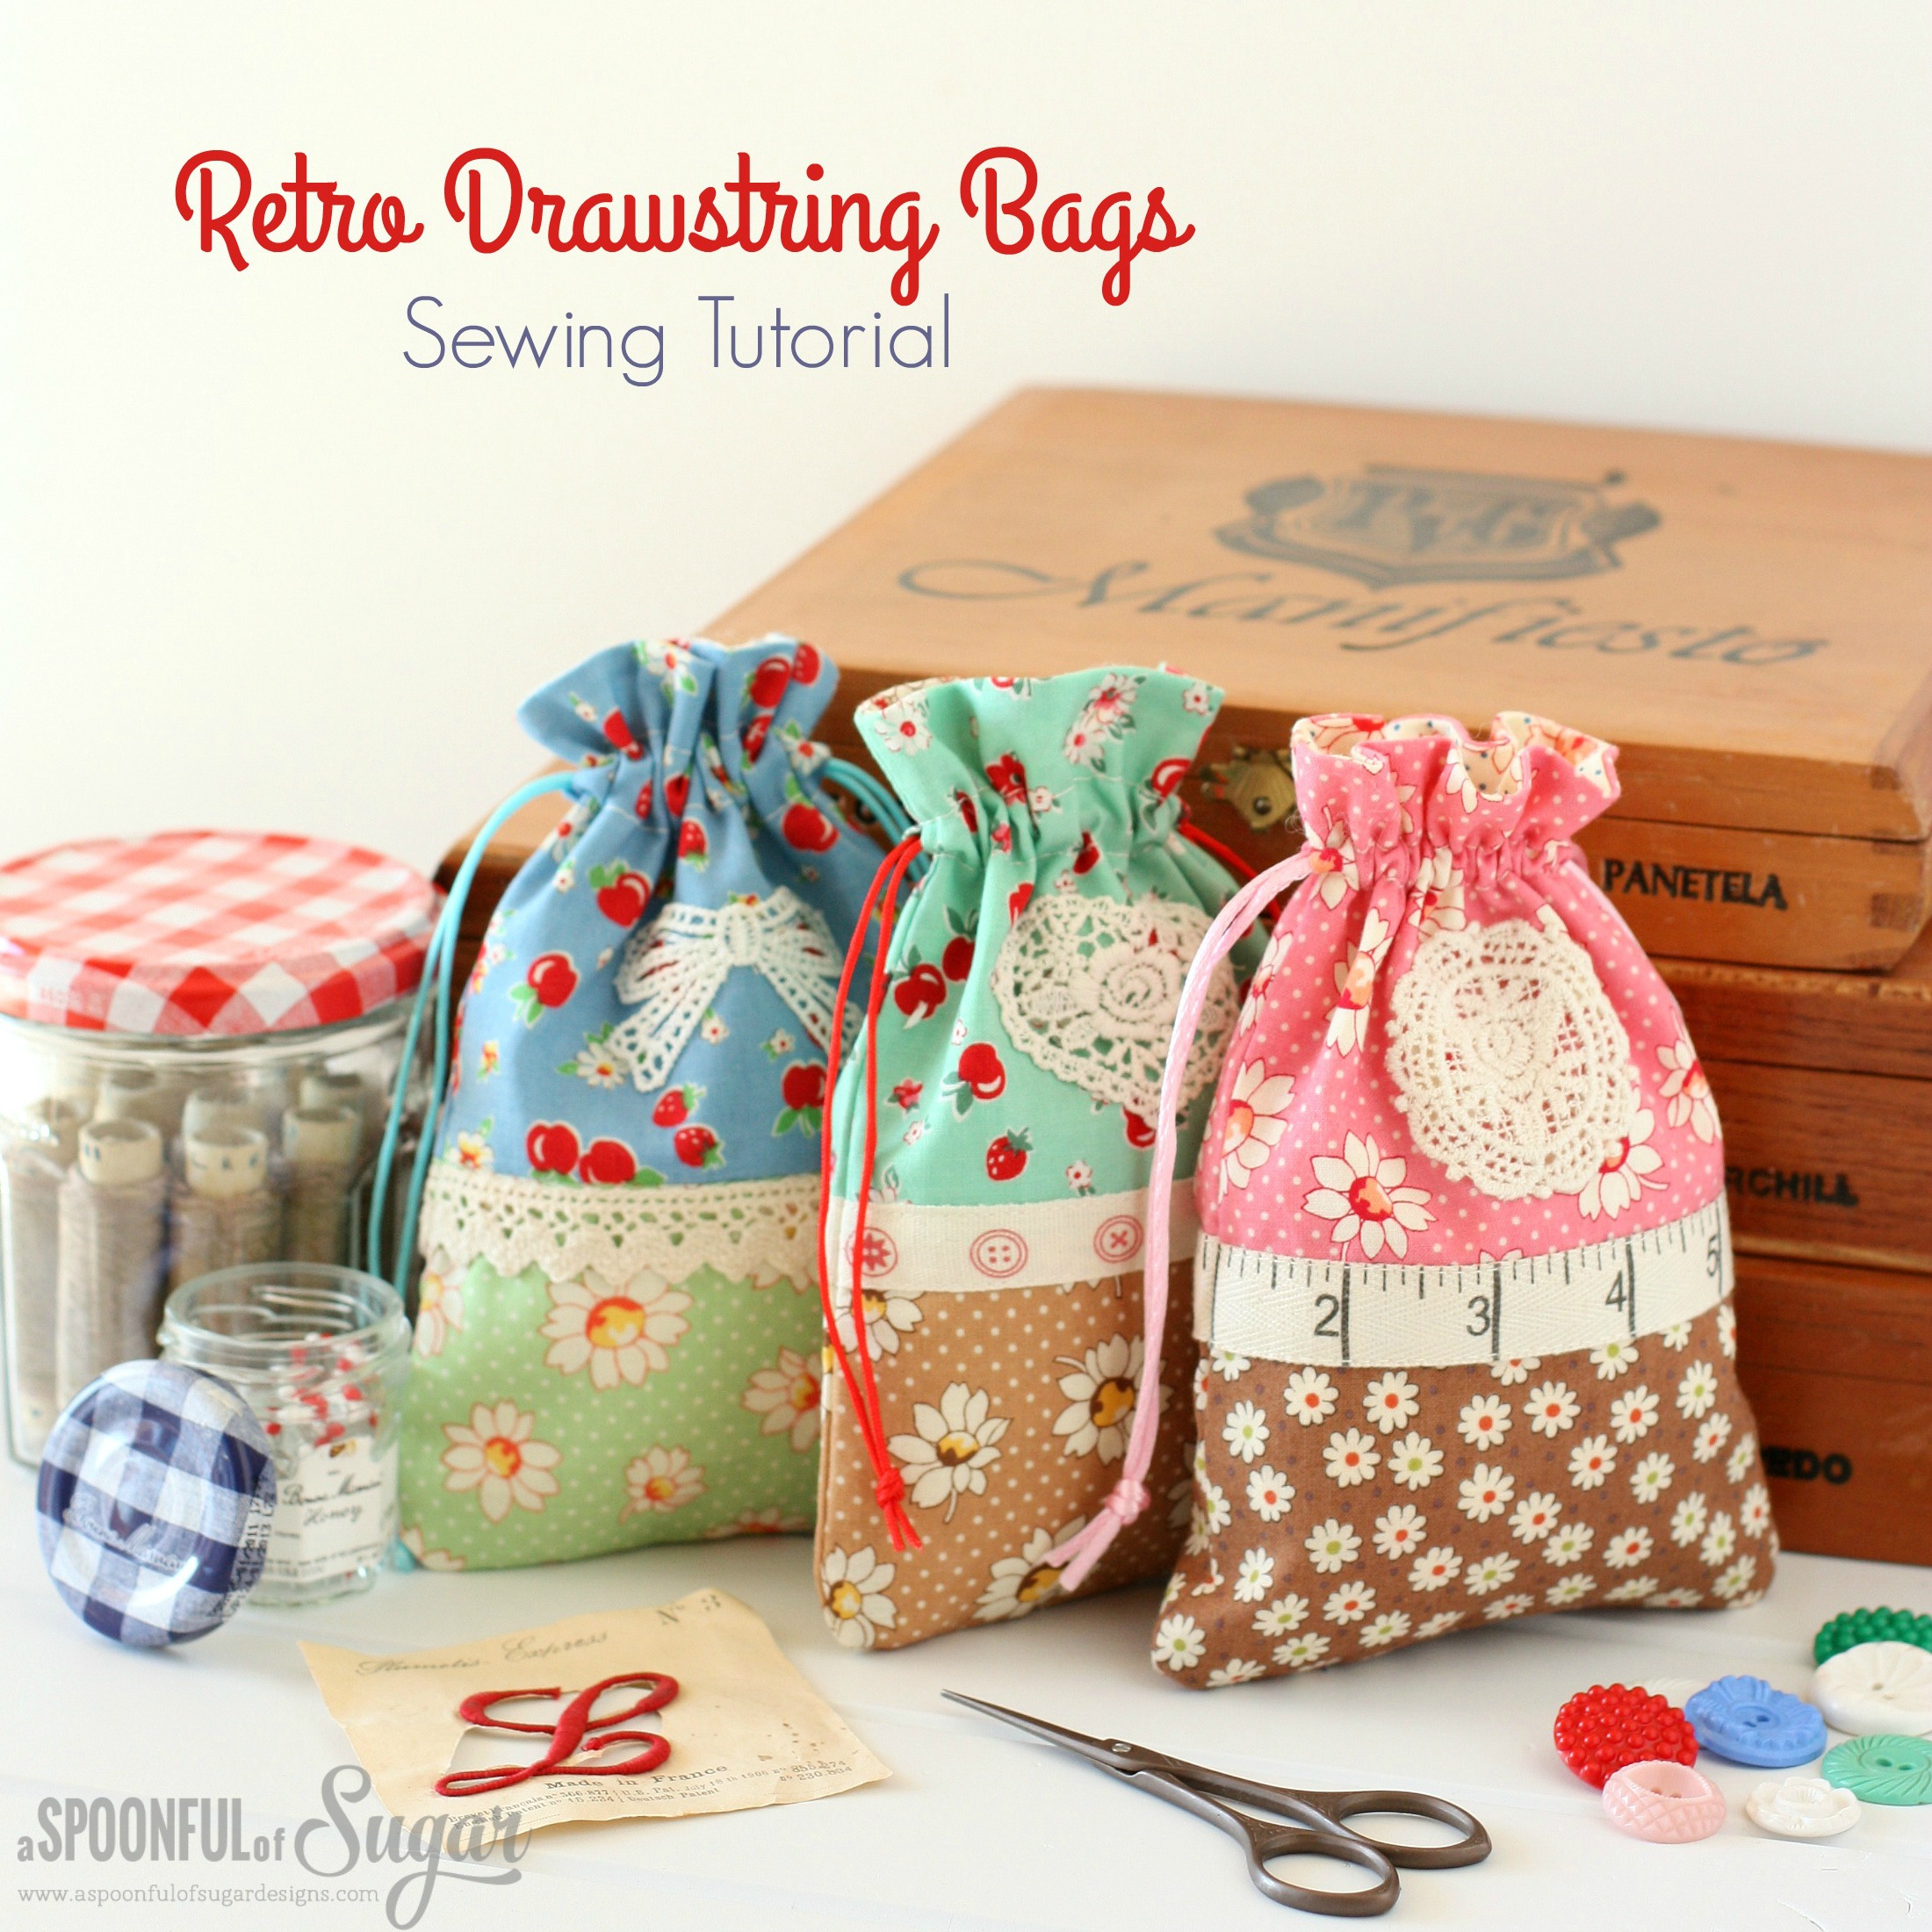 Christmas Retro Drawstring Bags - A Spoonful of Sugar